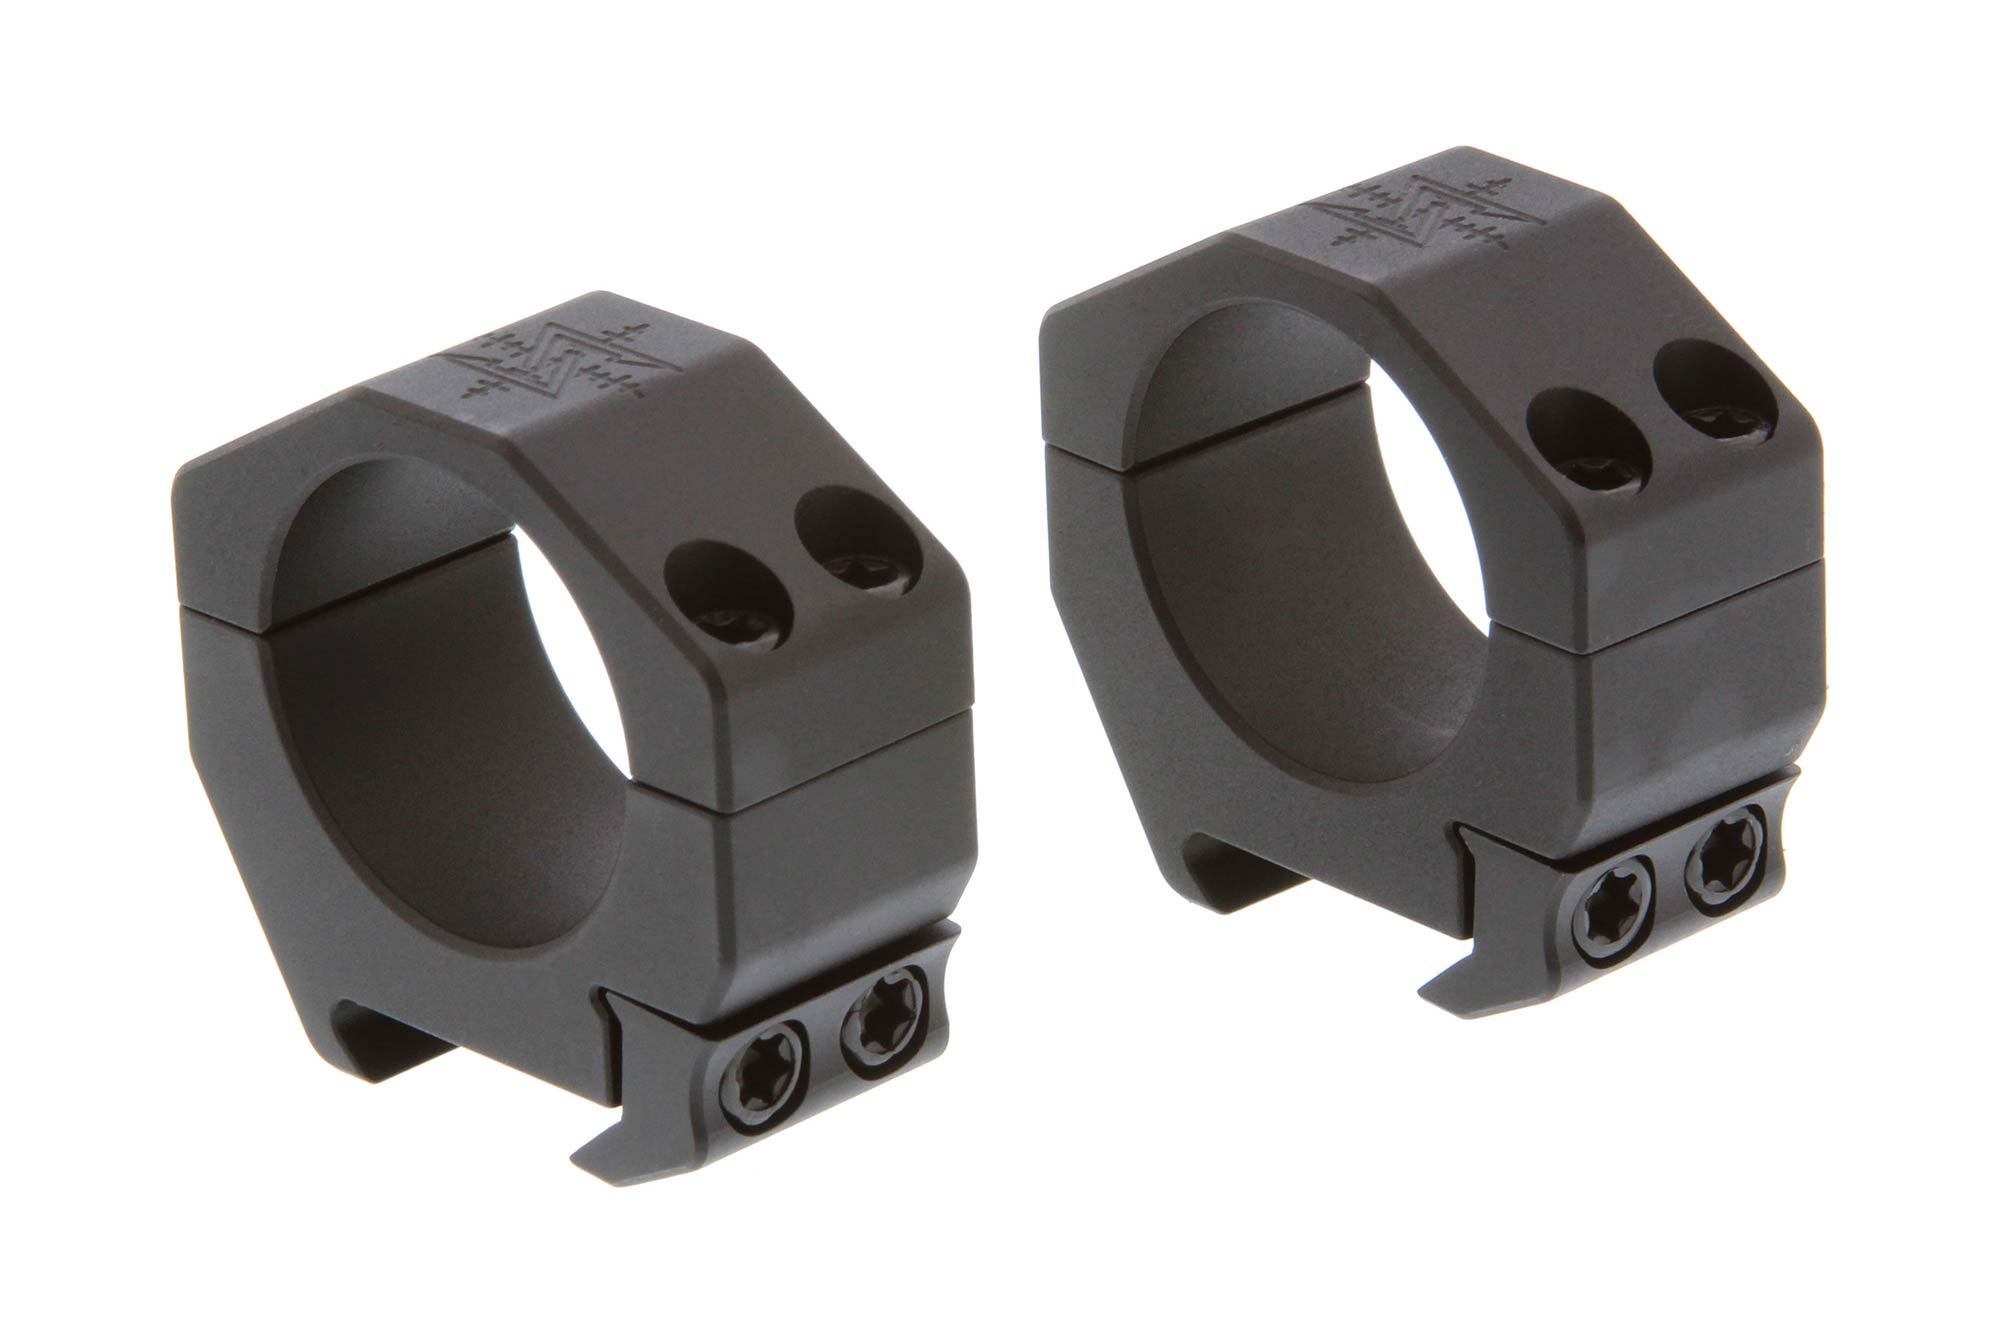 The Seekins Precision 30mm scope rings feature a medium height and 4-cap design